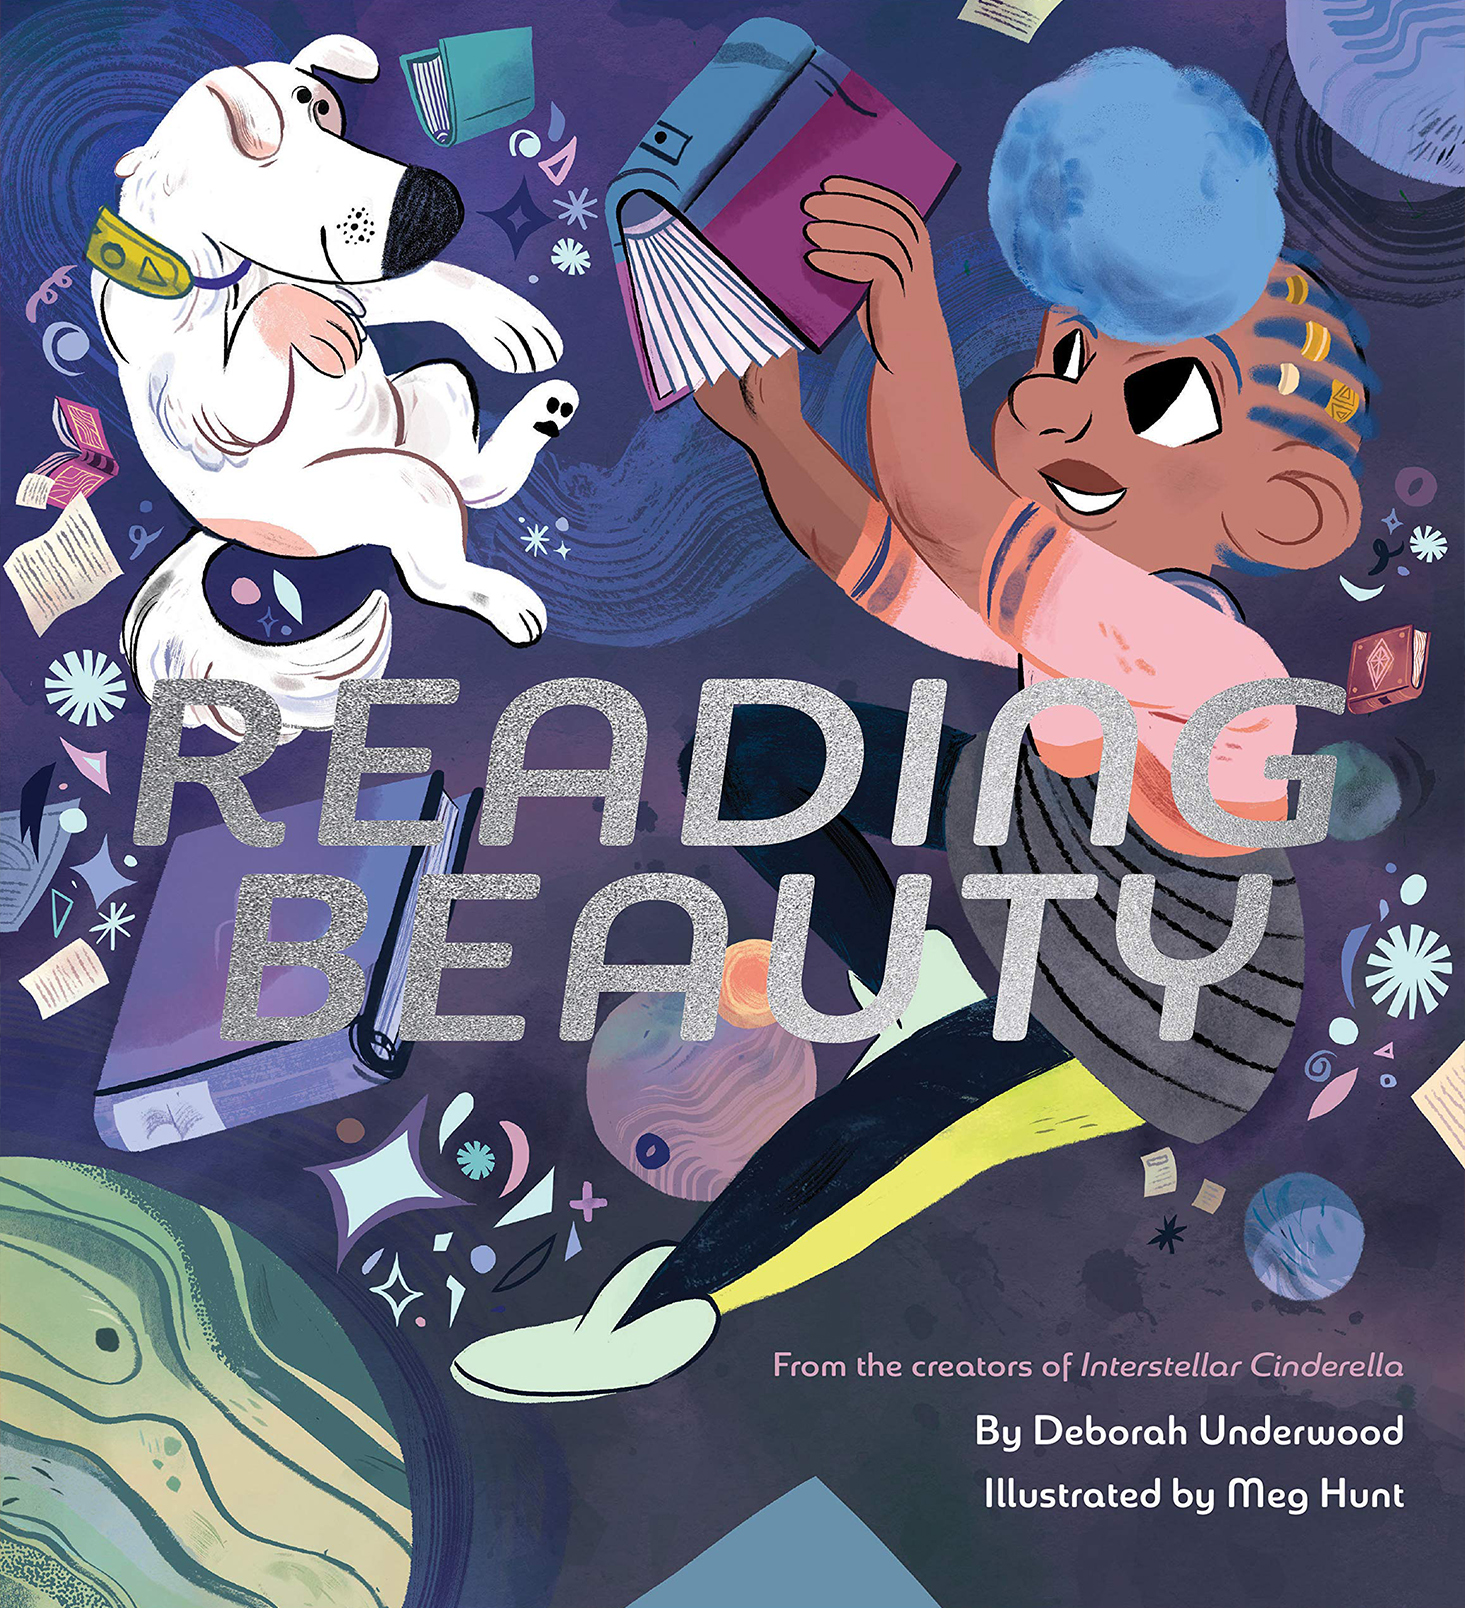 Reading Beauty by Deborah Underwood